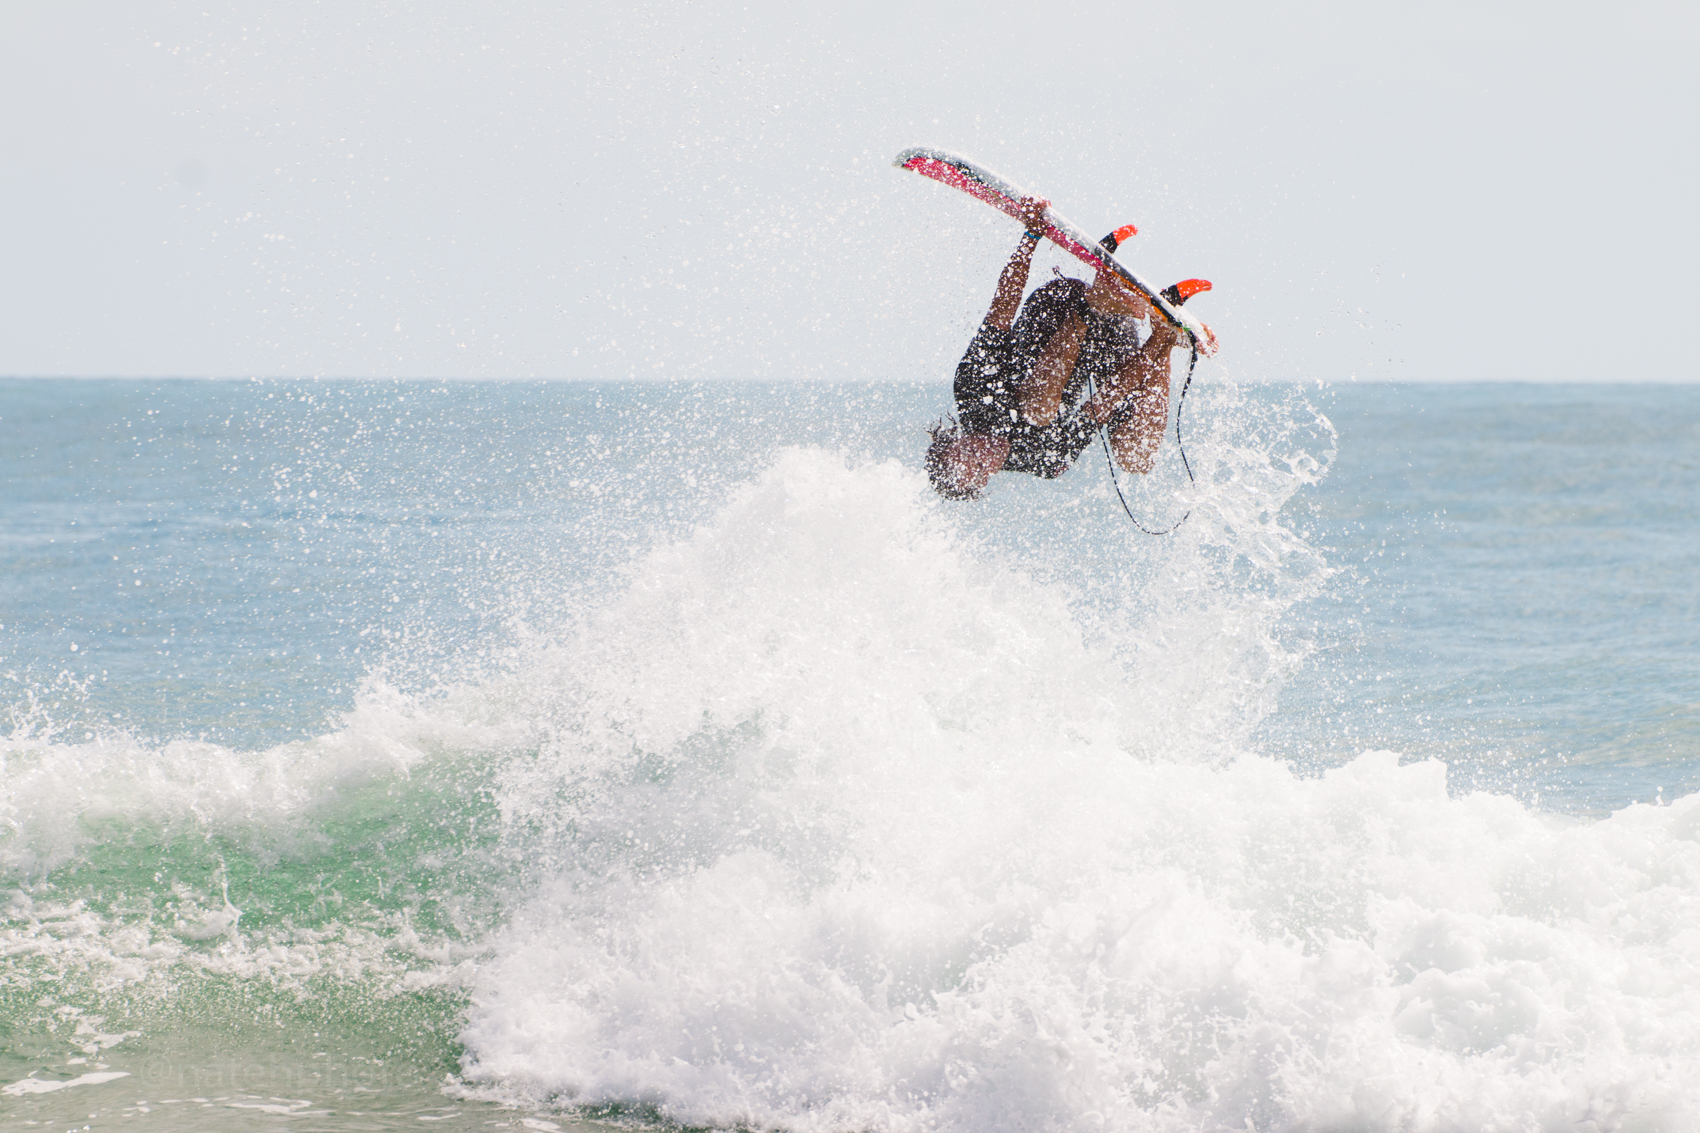 When your surf coach goes upside down. Michel Flores trying Brazilian aerials.